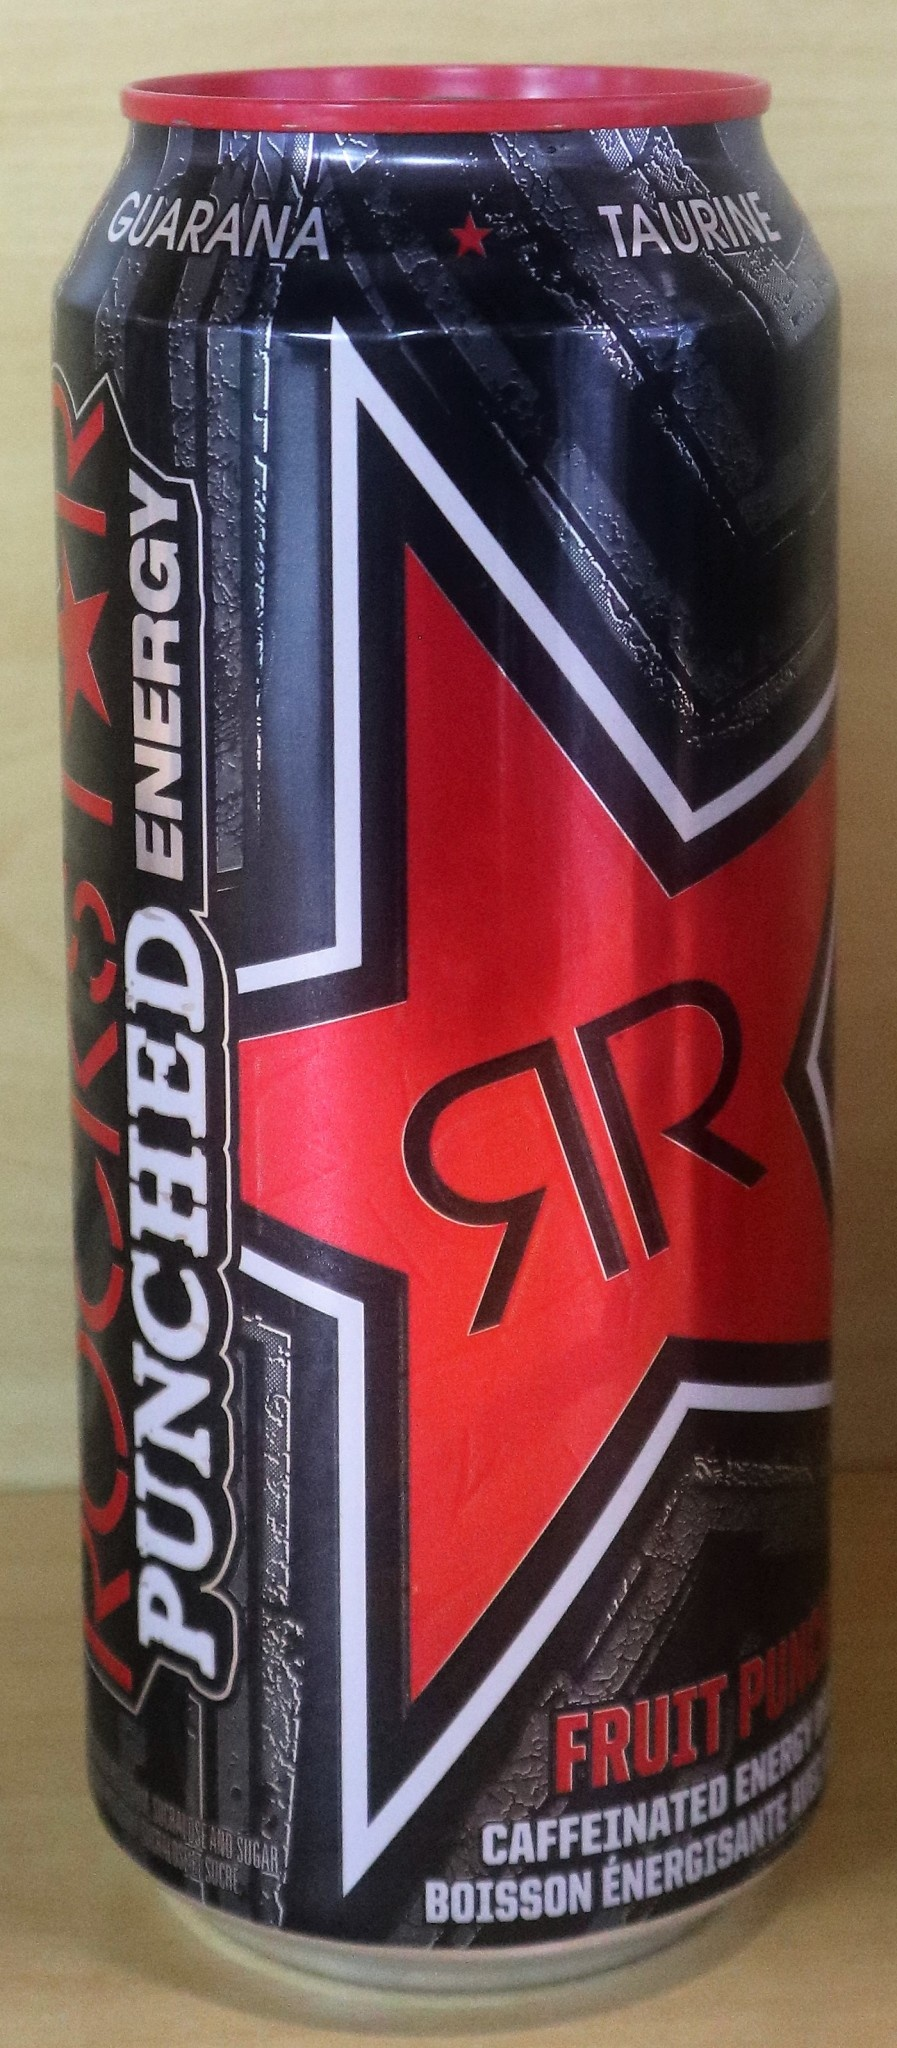 Rockstar Rockstar - Punched - Fruit Punch - 473mL can